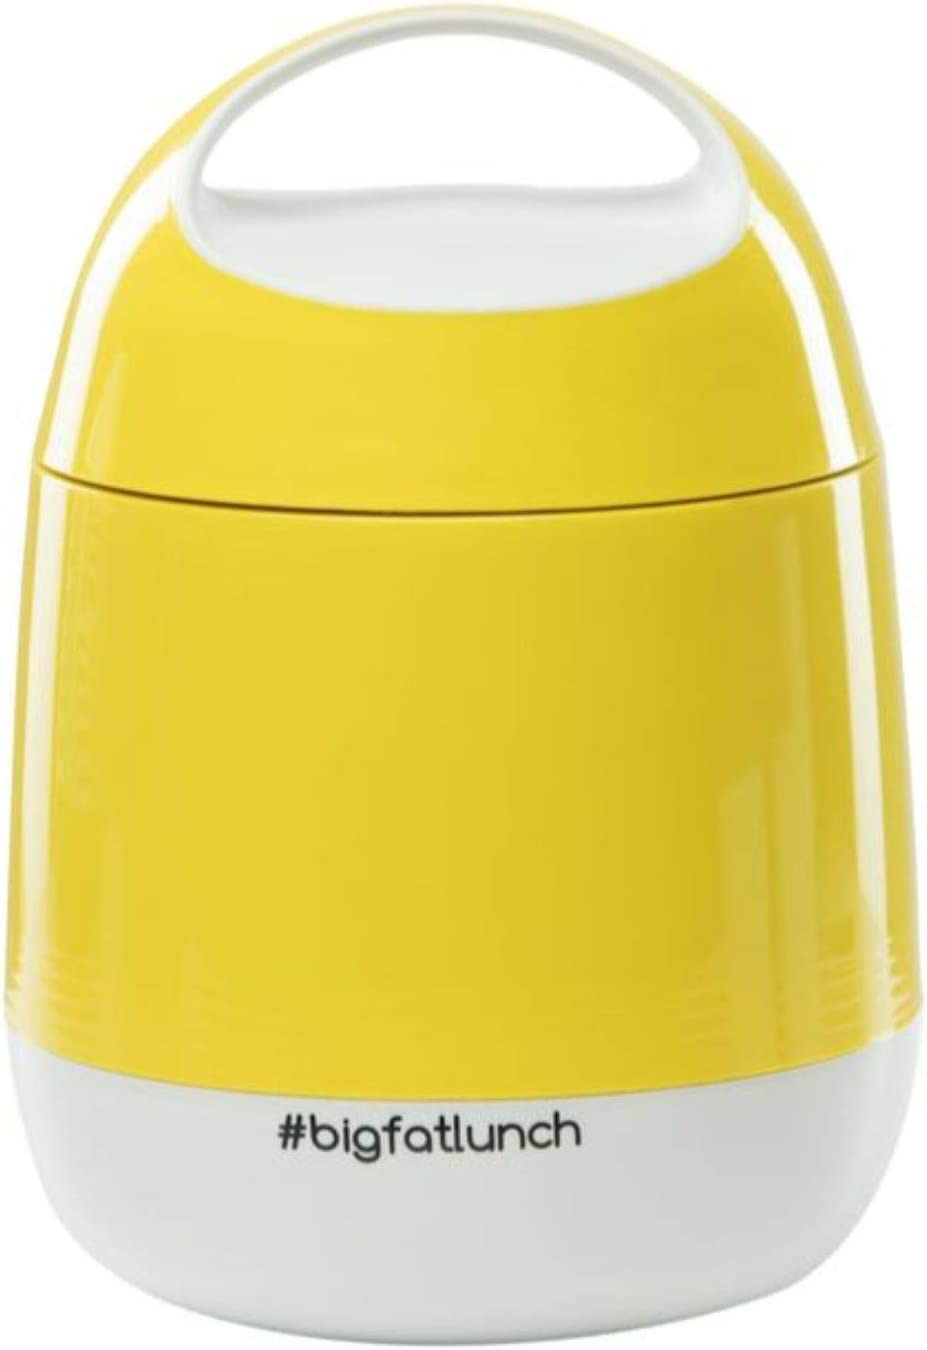 Food Thermos Lunchbox for Kids, Adults, Vacuum Insulated Hot 8 hours Food Flask. 2 Bowls Inside, Leak Proof, BPA Free, holds 40oz, Dishwasher Safe, Tiffin Box for HOT Food, Bento (Yellow)